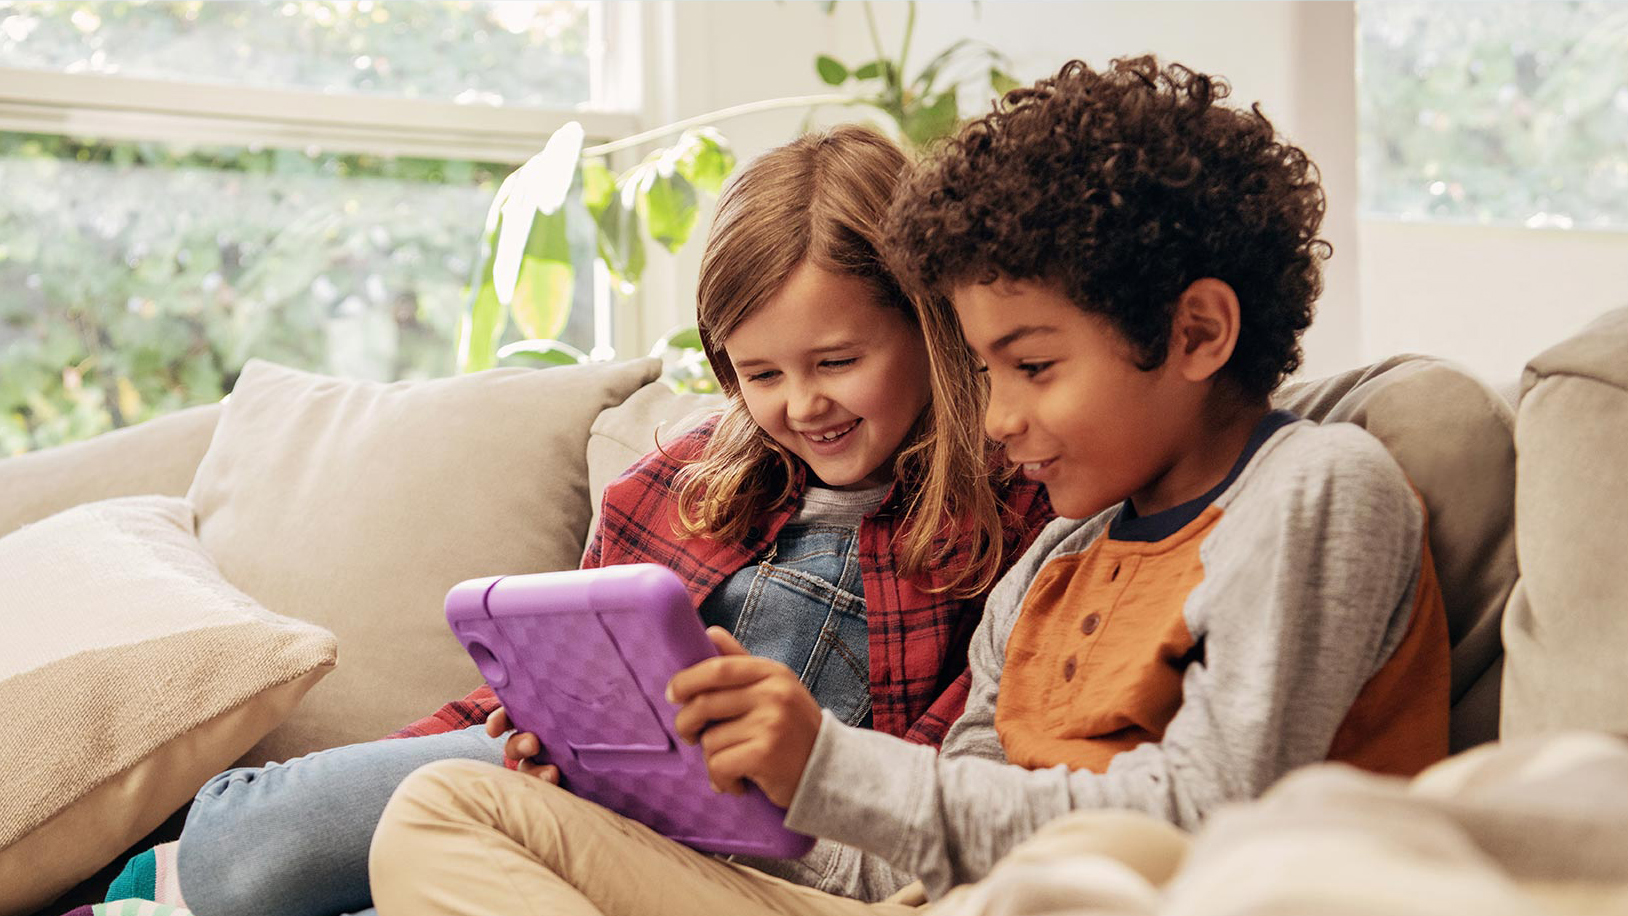 Fire 8 Kids Edition Tablet